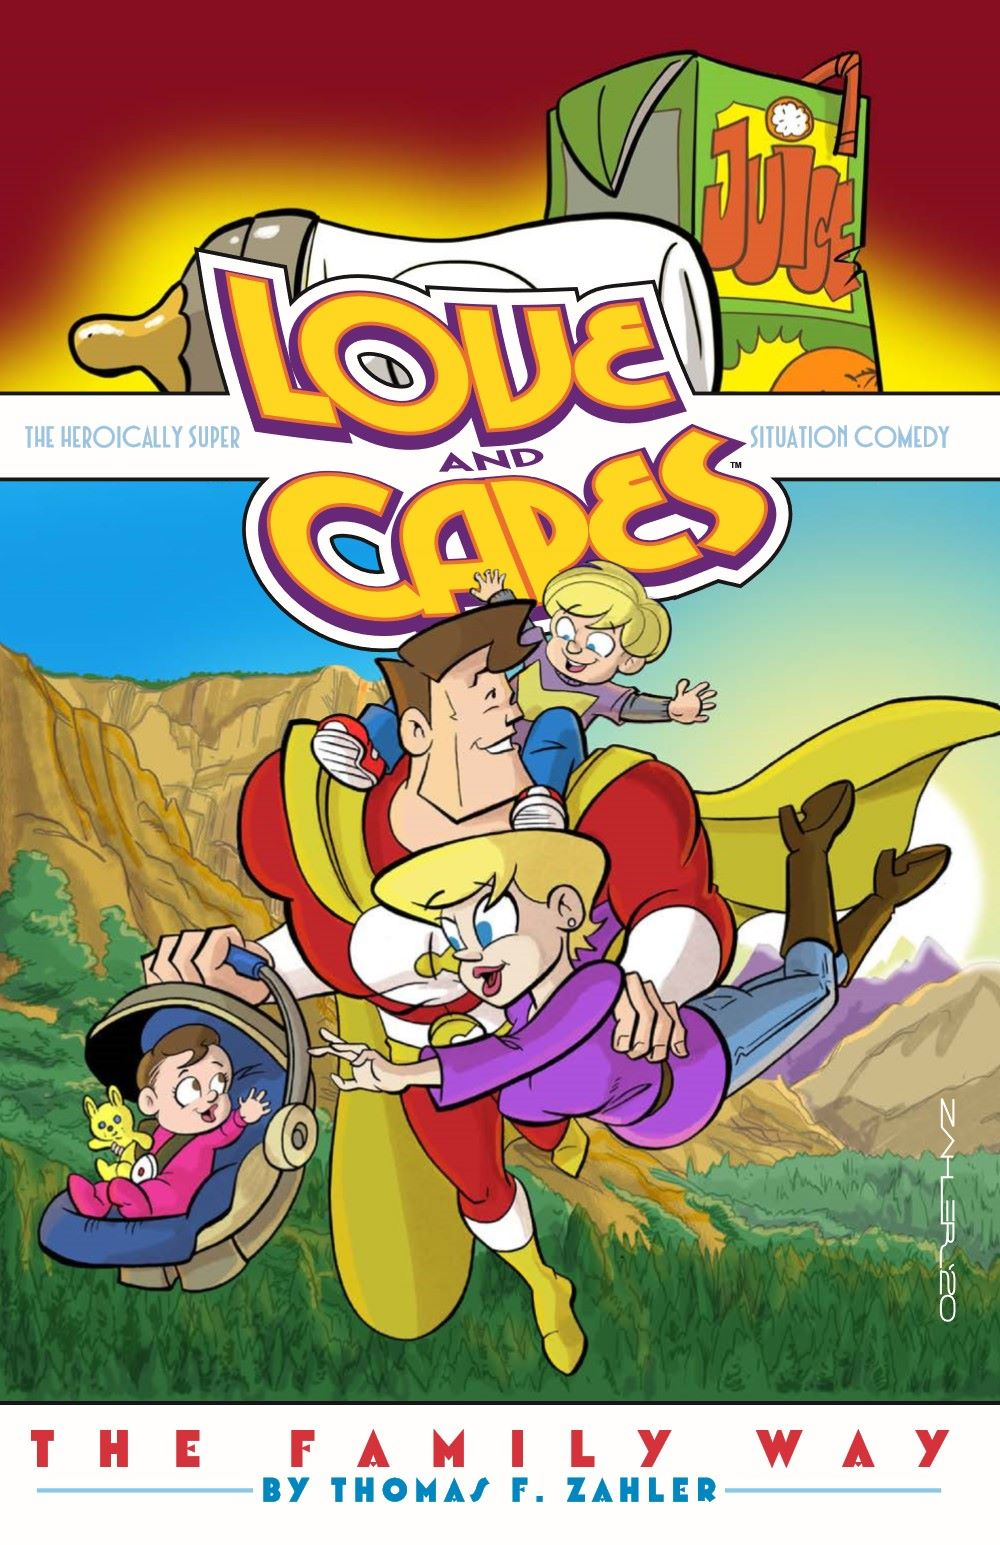 LoveandCapes_V5_pr-1 ComicList Previews: LOVE AND CAPES VOLUME 5 THE FAMILY WAY TP